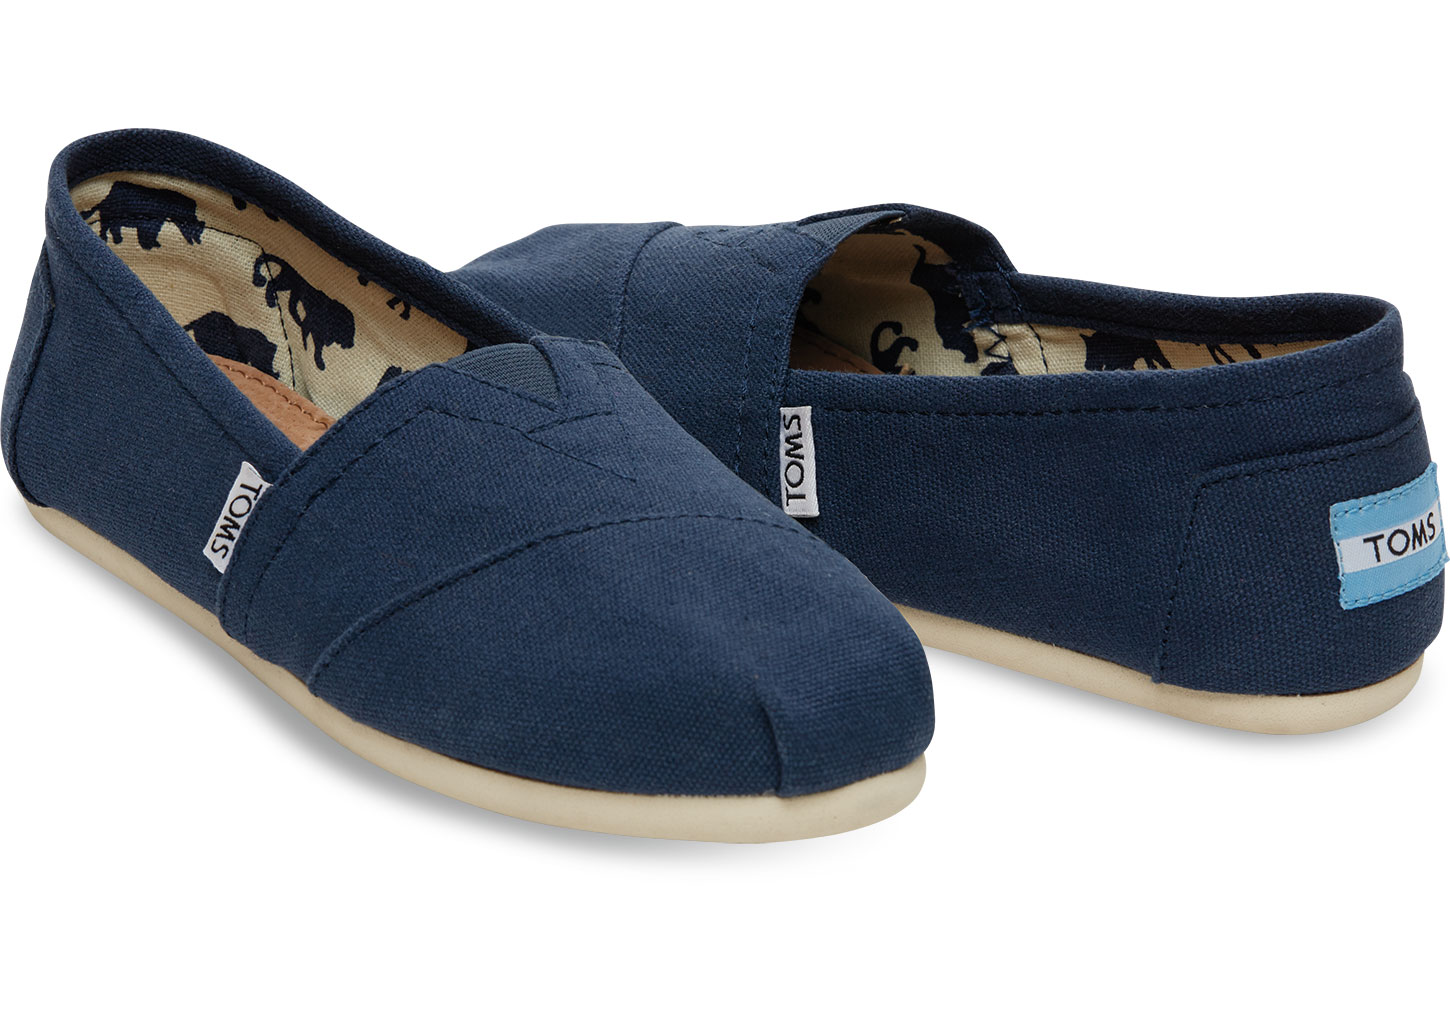 Navy shoes for women